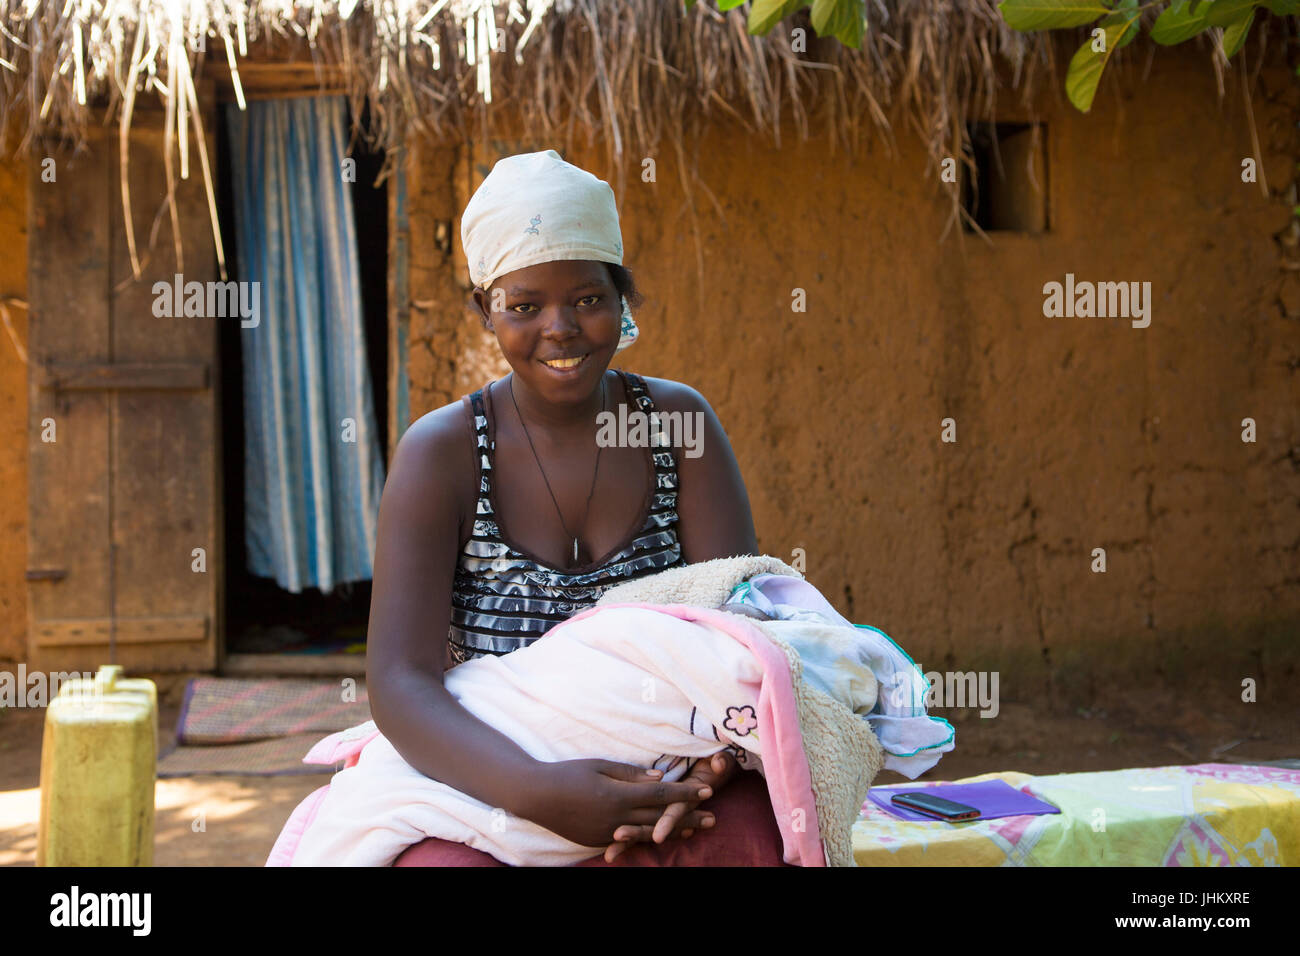 A mother with her new born baby outside their traditional mud hut home in Bukeeri, Uganda. - Stock Image